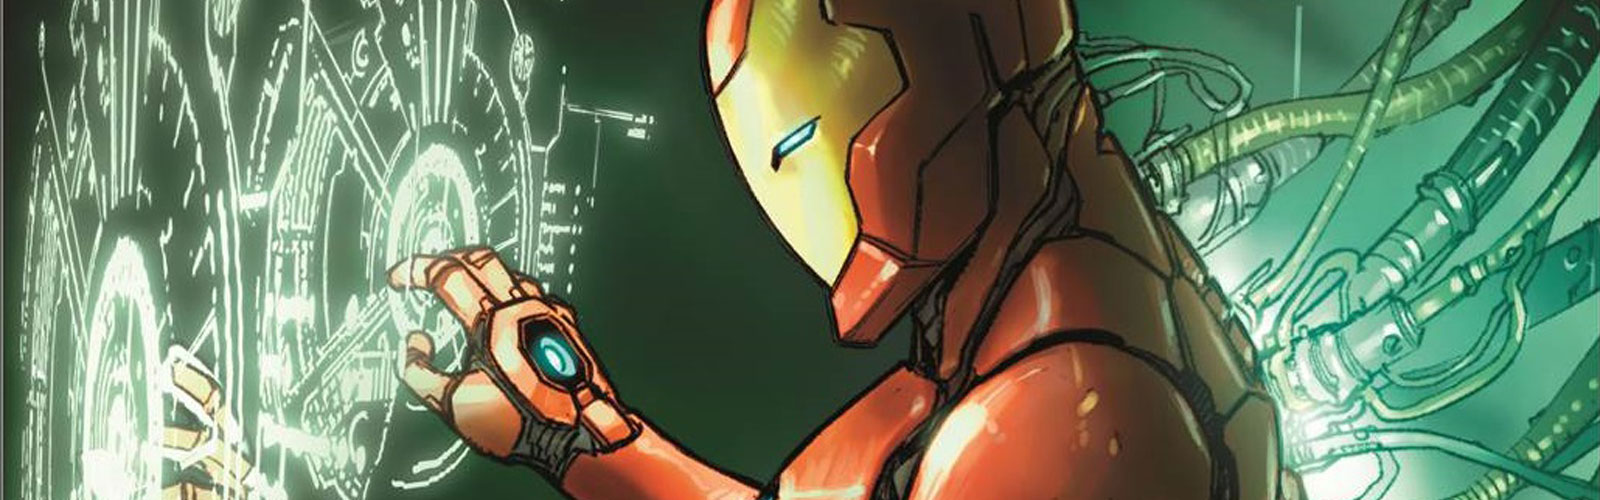 New Releases - 07-10-15: Invincible Iron Man